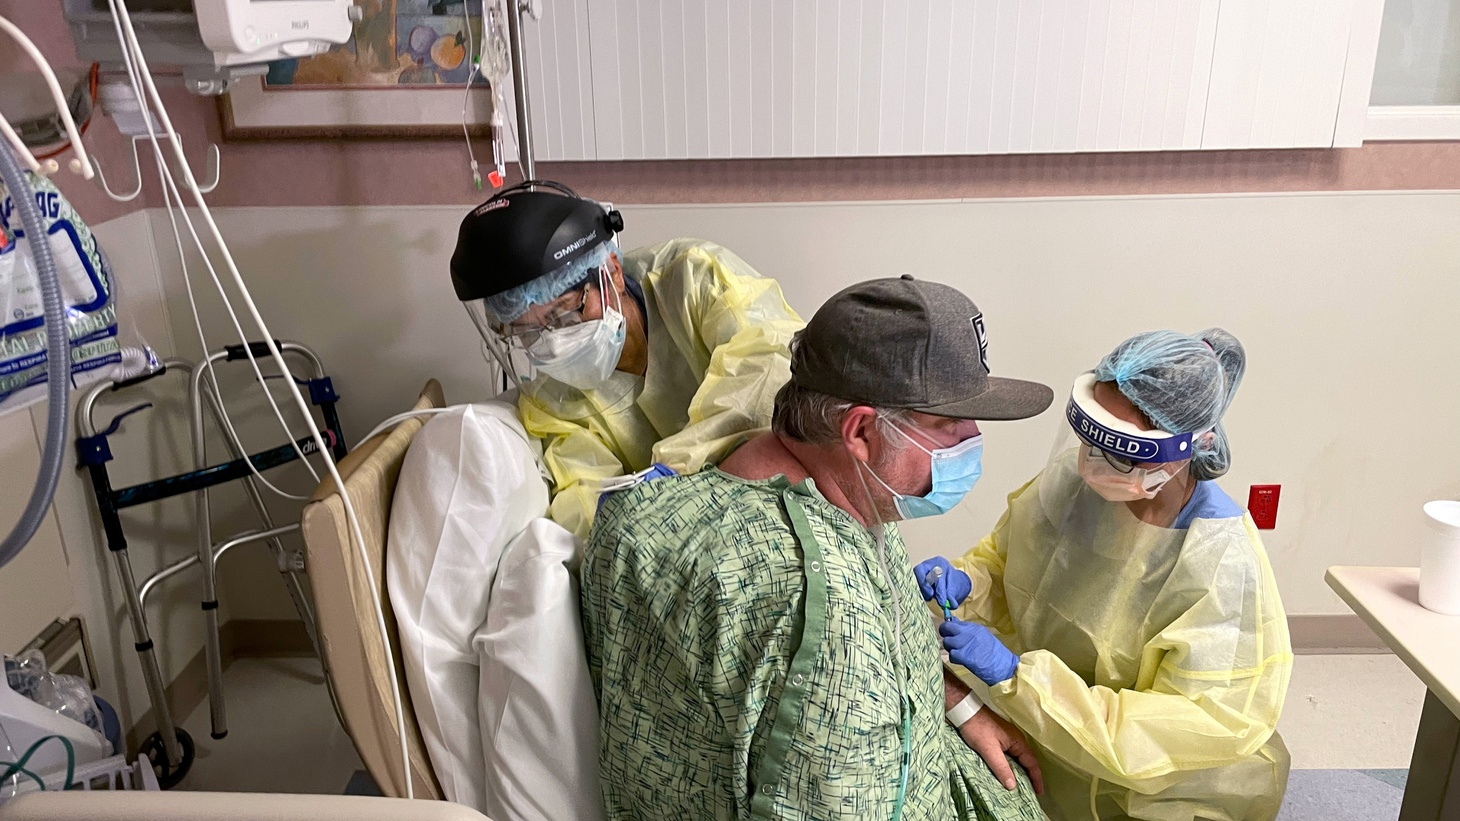 COVID-19 patient Brian Parisi, 53, from Orange County, is treated by staff in the ICU at Providence St. Joseph Hospital in Orange, California, U.S. July 23, 2021.